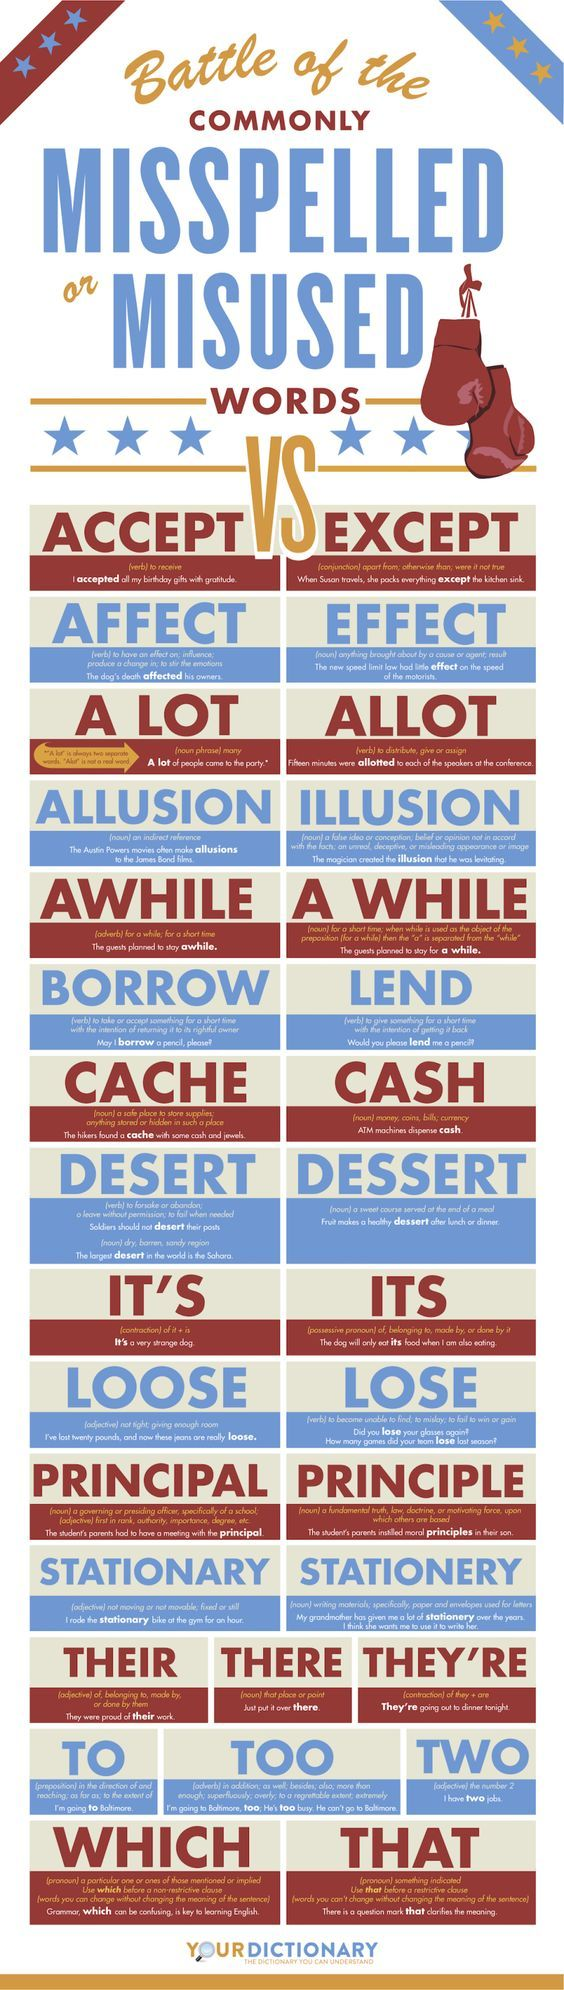 Commonly misspelled English words - #infographic  --  Created by Your Dictionary, a super user-friendly online dictionary and thesaurus, the chart lists words that are most commonly misused and misspelled.  -  Each card includes the definition of the word and an example of using it in a sentence. - Via Design Taxi.